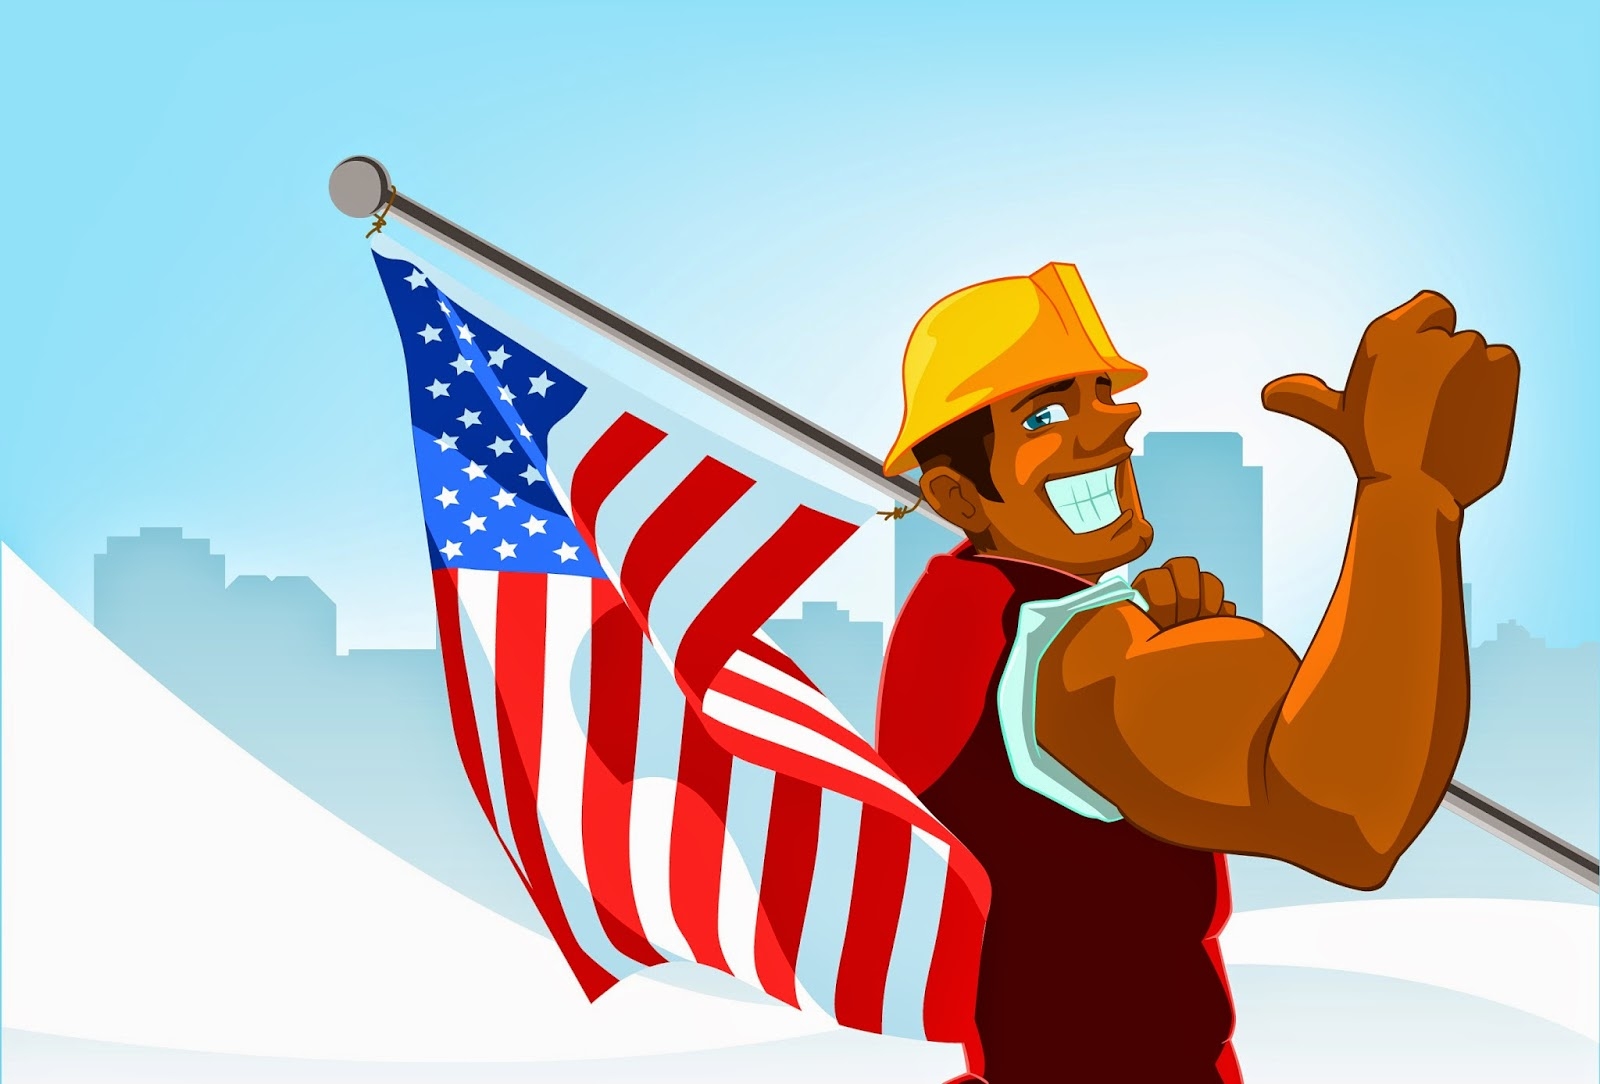 Happy labor day pictures 2016 high definition hd labor day labor day 2016 pictures kristyandbryce Image collections